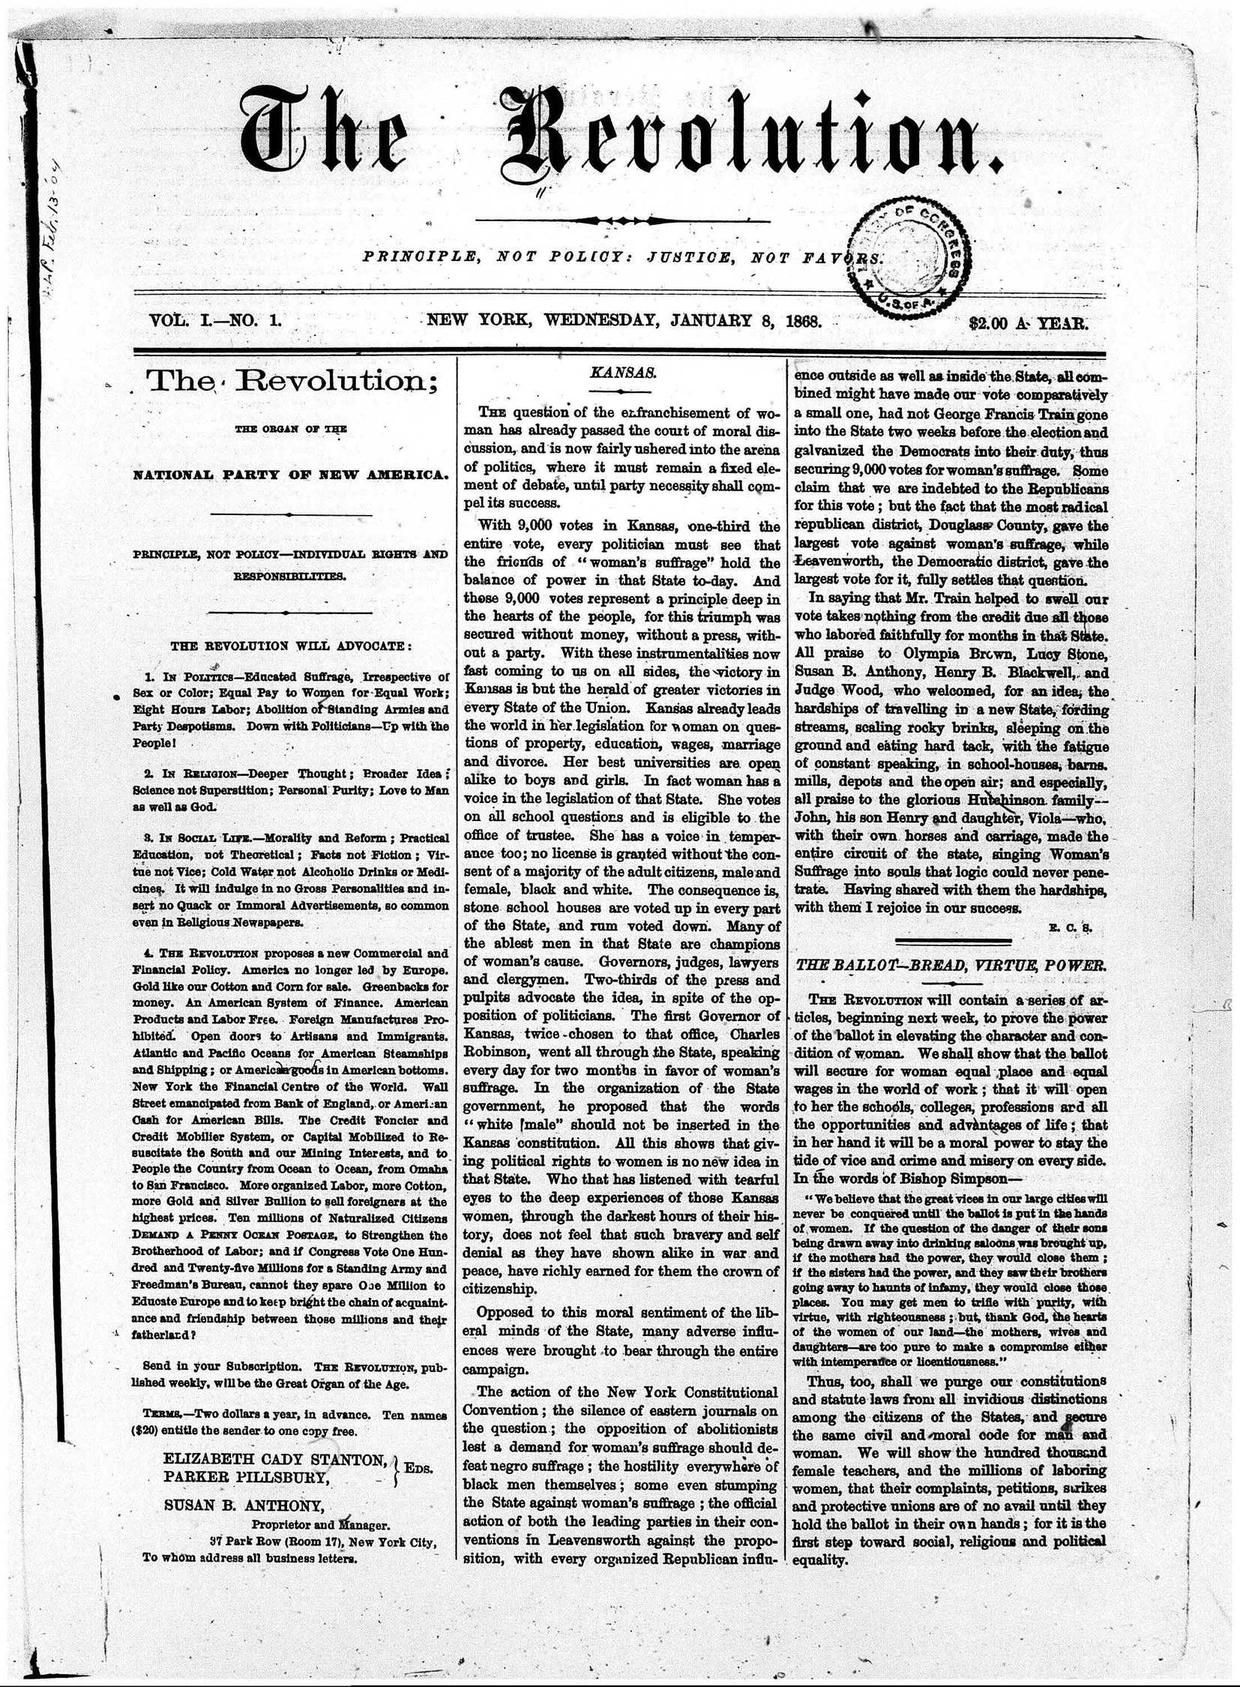 Susan B. Anthony Suffrage/Women's Rights Newspaper:  The Revolution (1868-1872) - Download